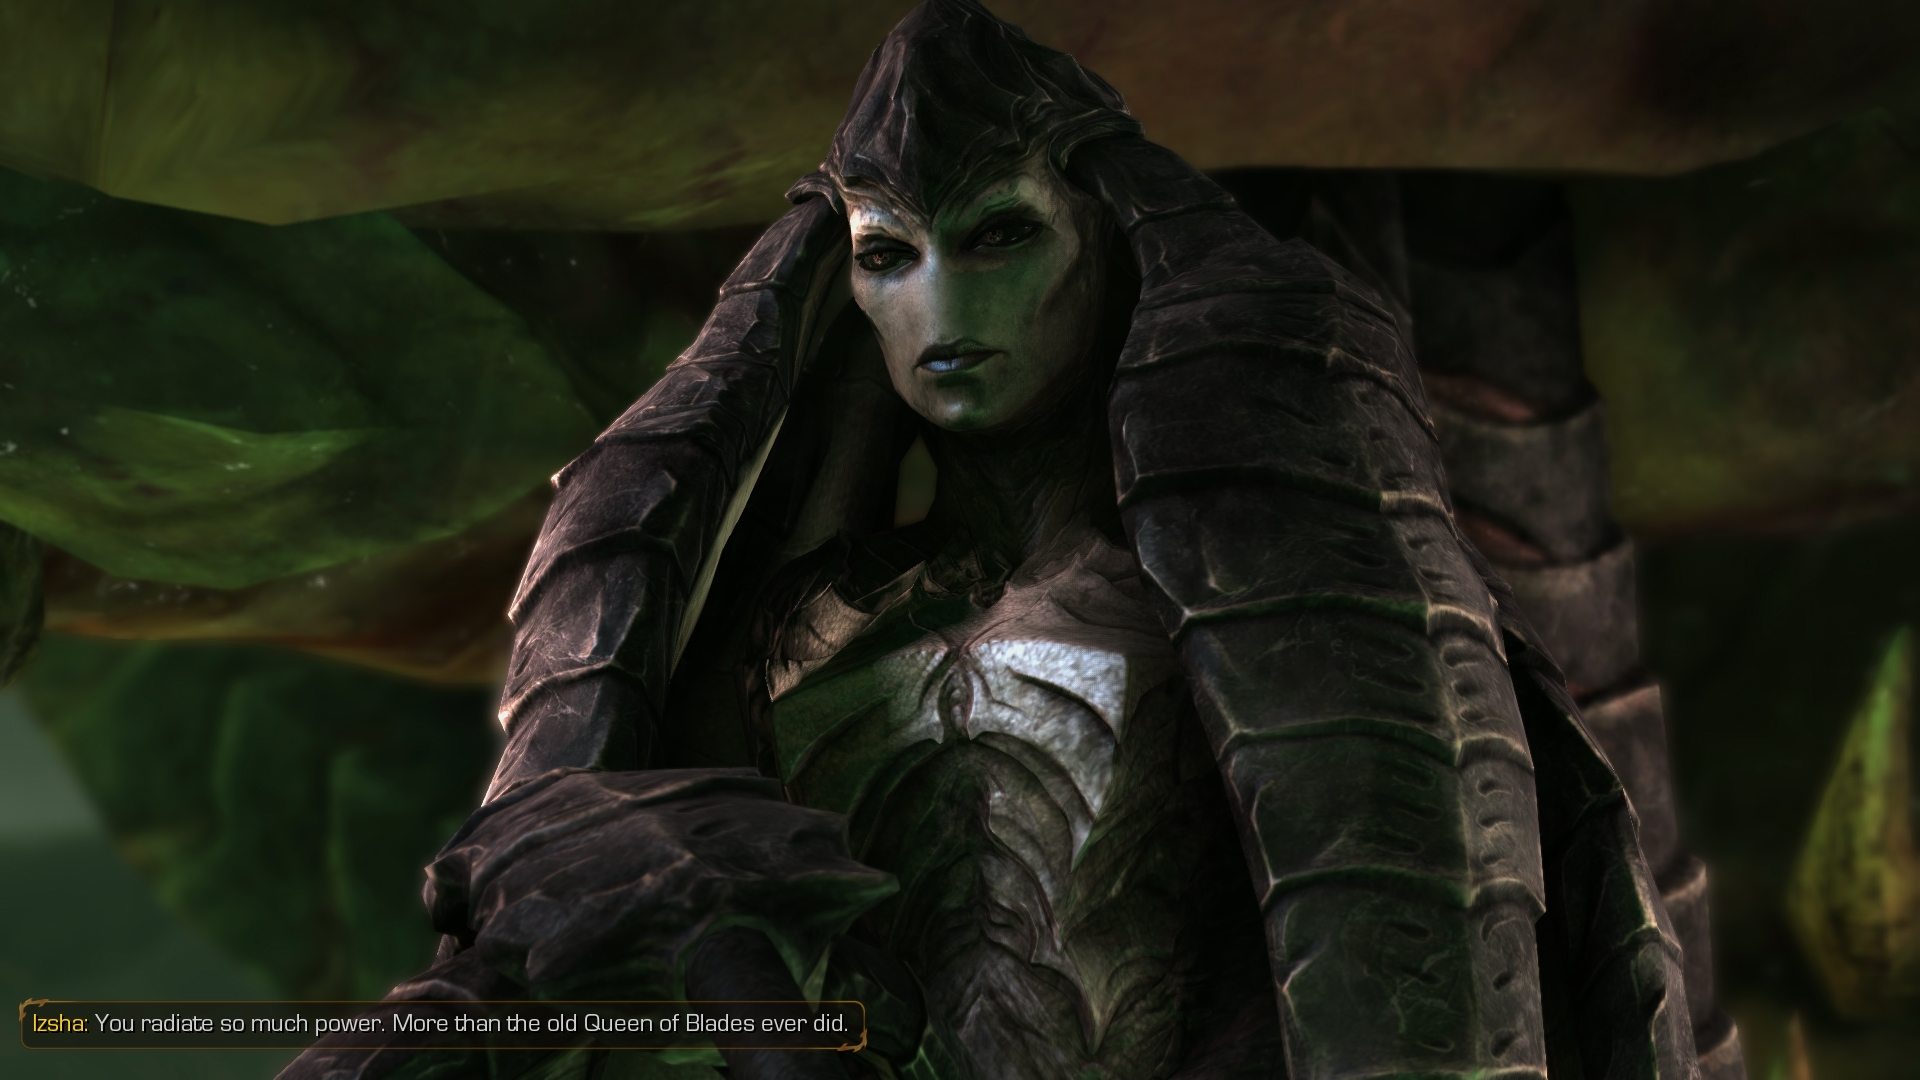 Primal Queen Of Blades Wallpaper Images Pictures   Becuo 1920x1080